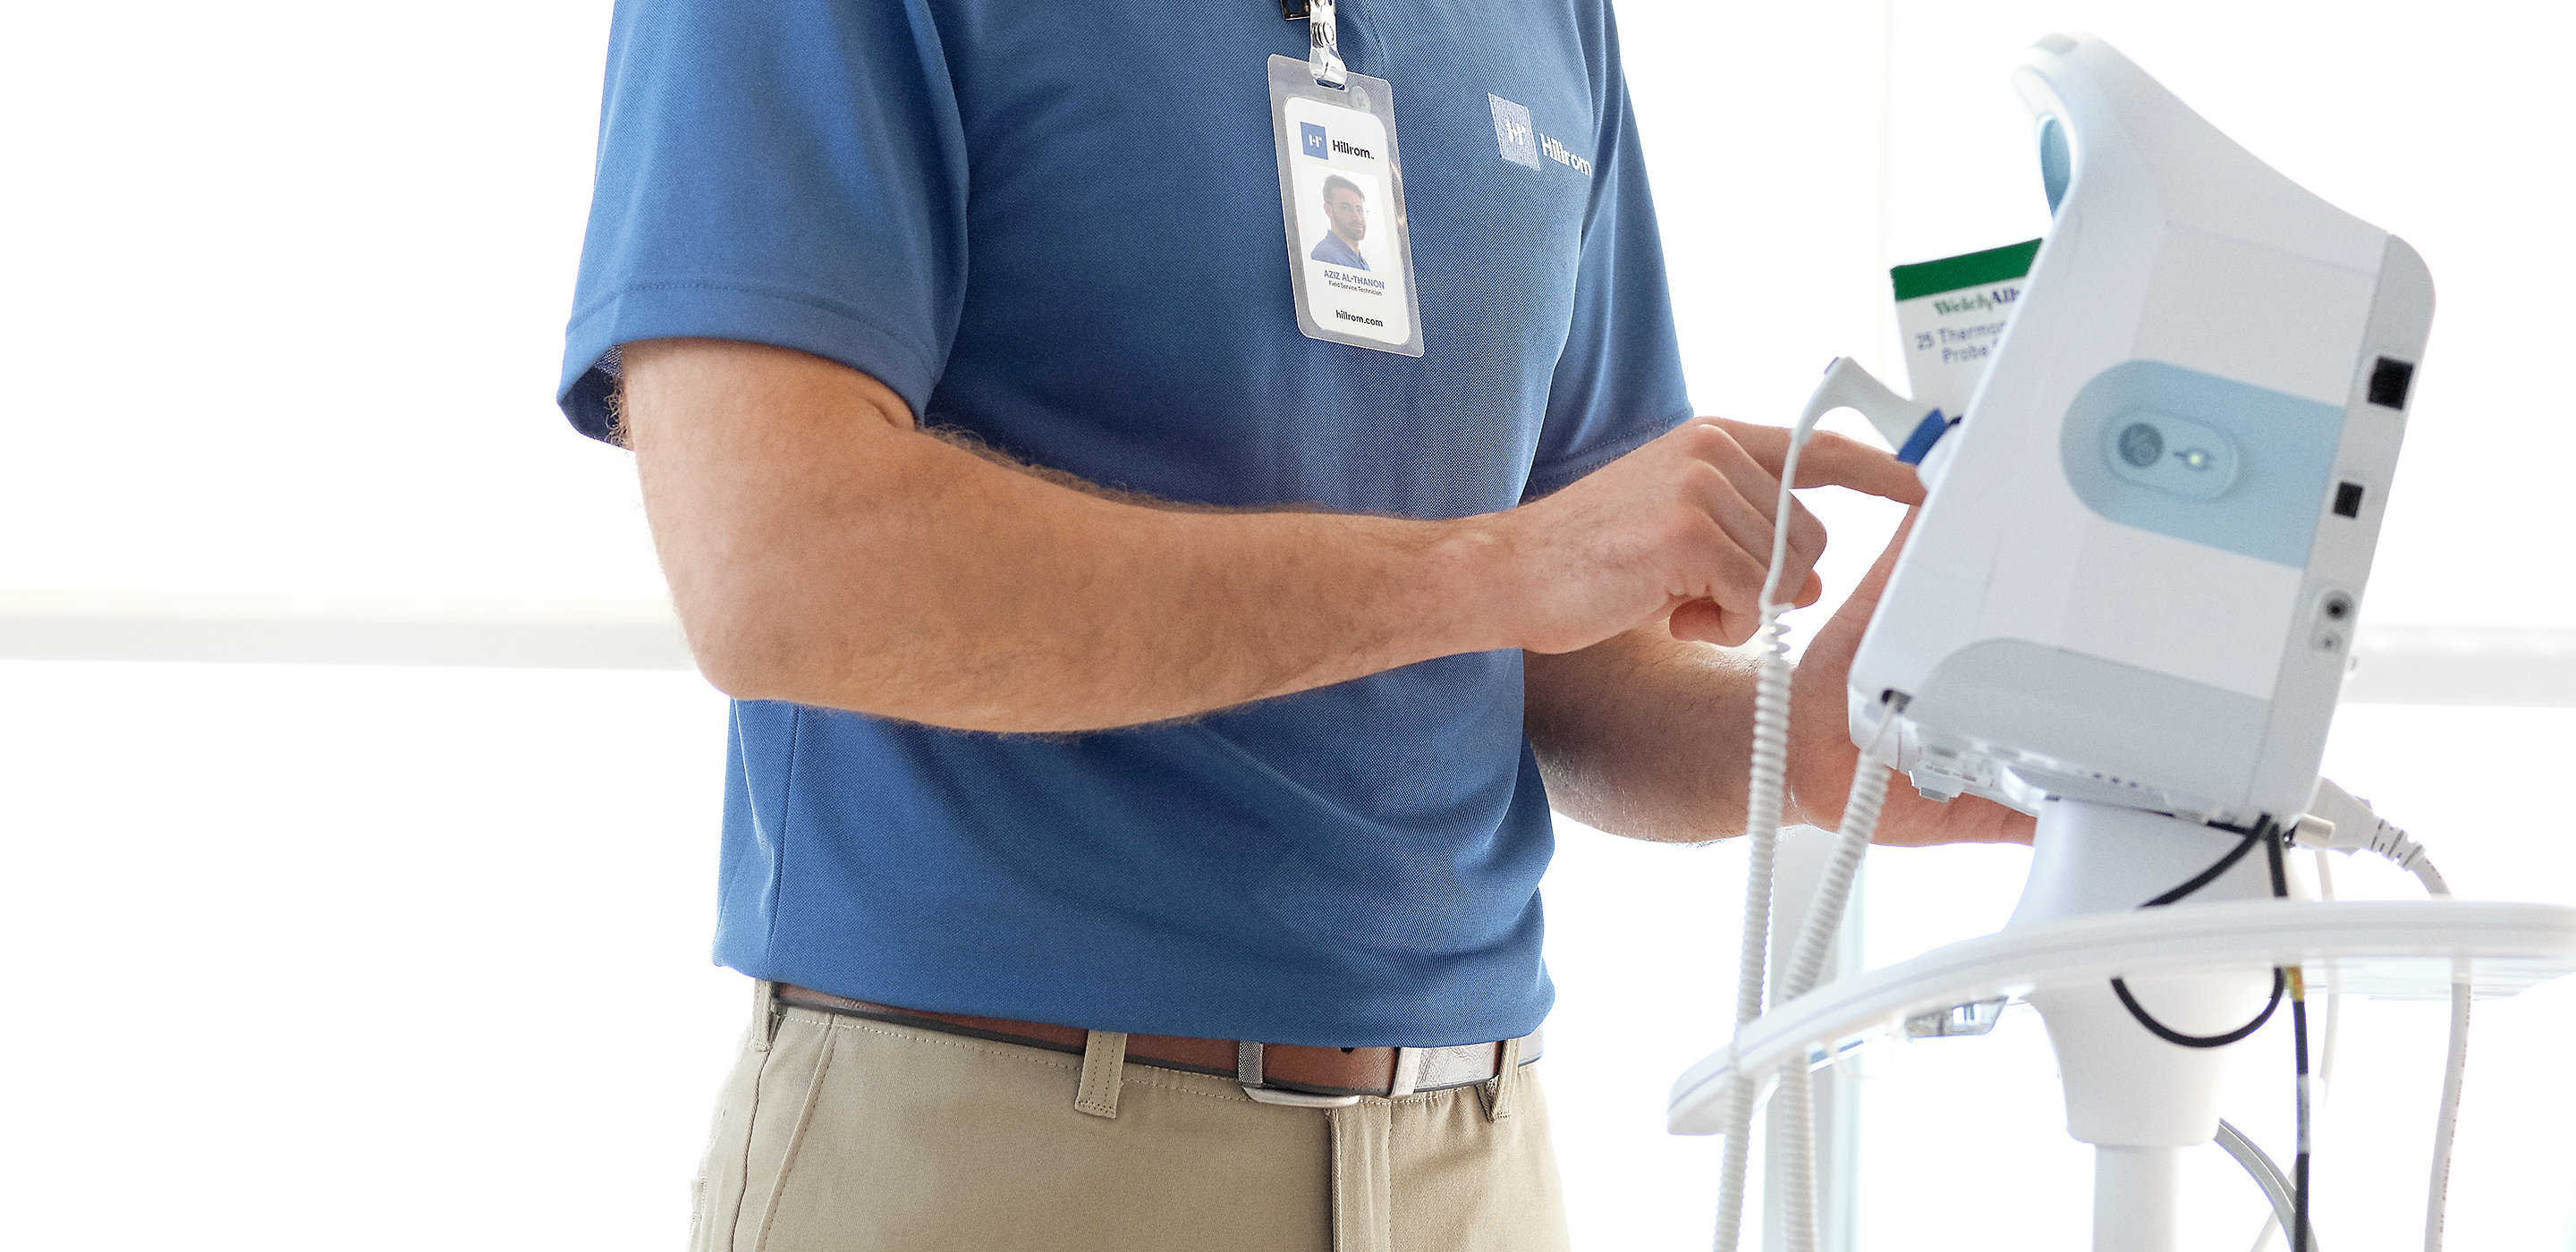 A Hillrom service technician works on a Connex® Vital Signs Monitor in a hospital room. A Centrella® Smart+ Bed is also visible.